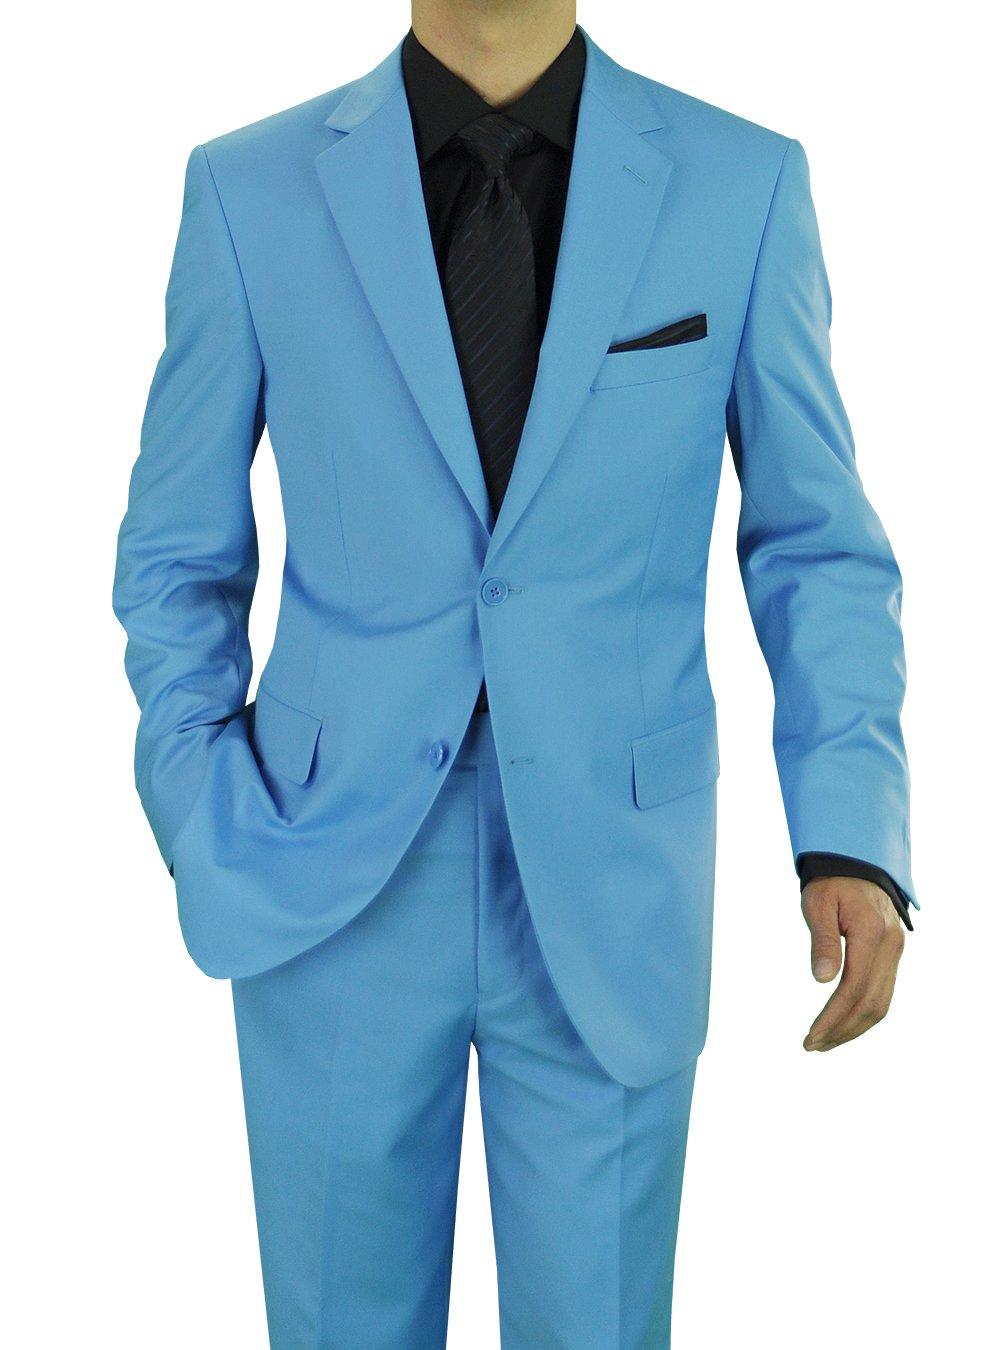 GN GIORGIO NAPOLI Presidential Men's Two Button Suit Sky Blue (42 Regular US / 52R EU/W 36'', Sky Blue)